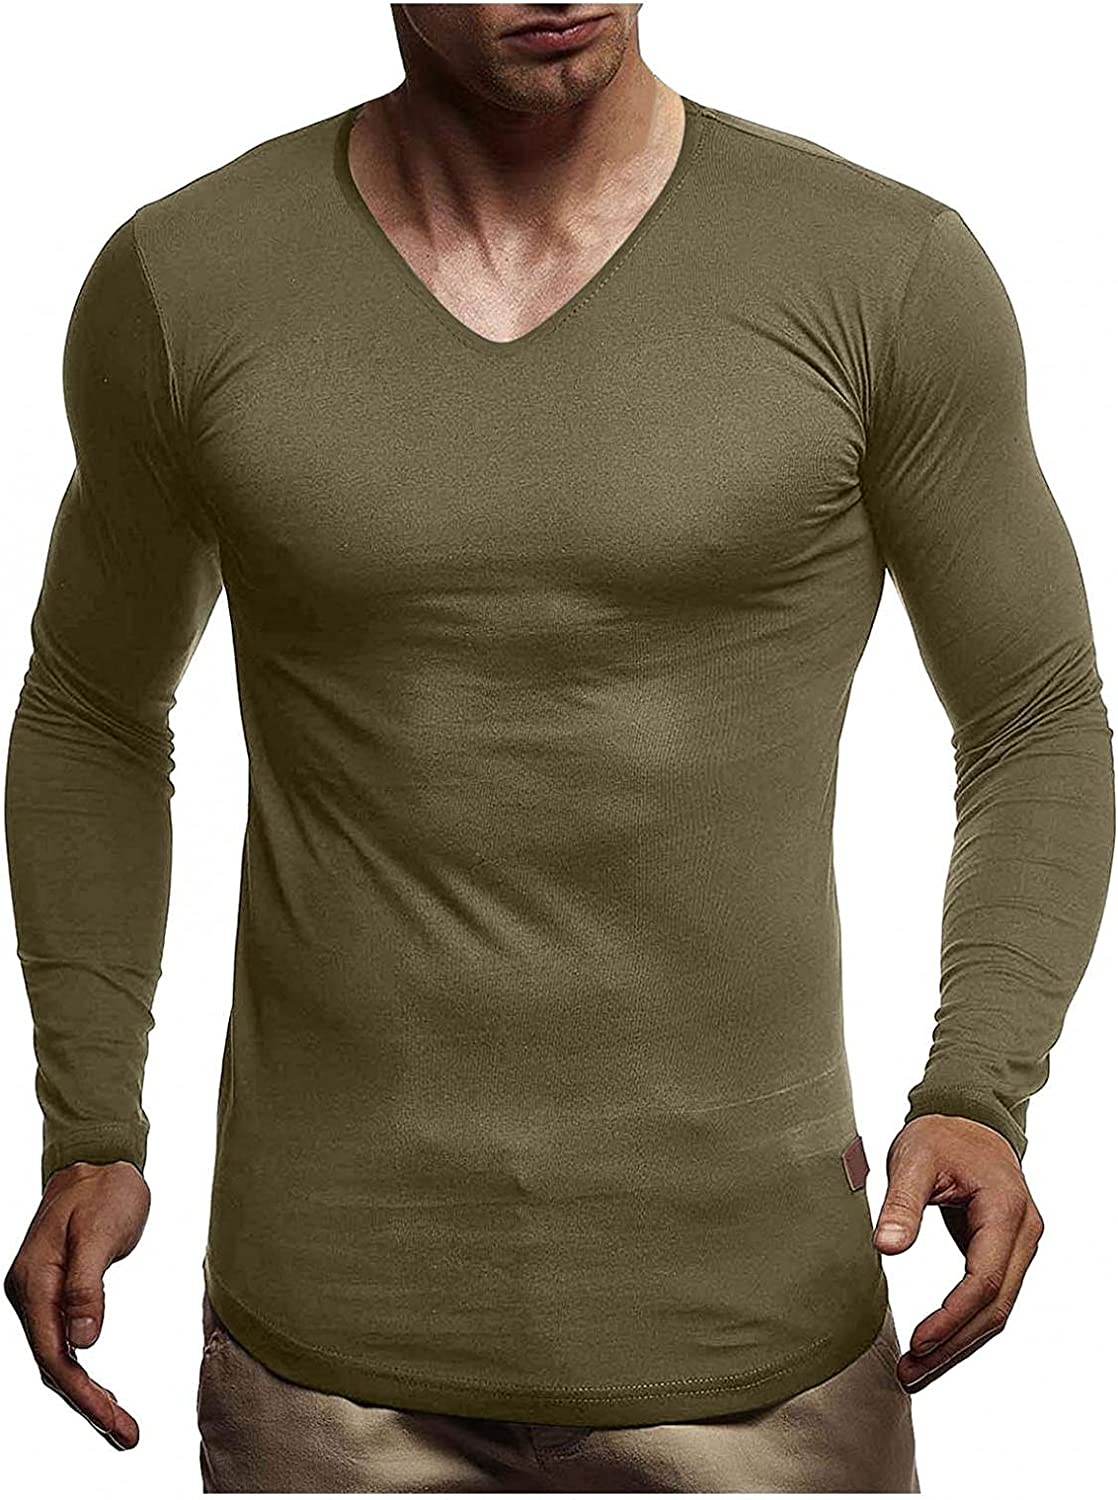 Shirts for Men Men's Autumn And Winter Casual Base Solid Color V Neck Long-Sleeved Shirt Fashion Blouse Polo Mens Shirts